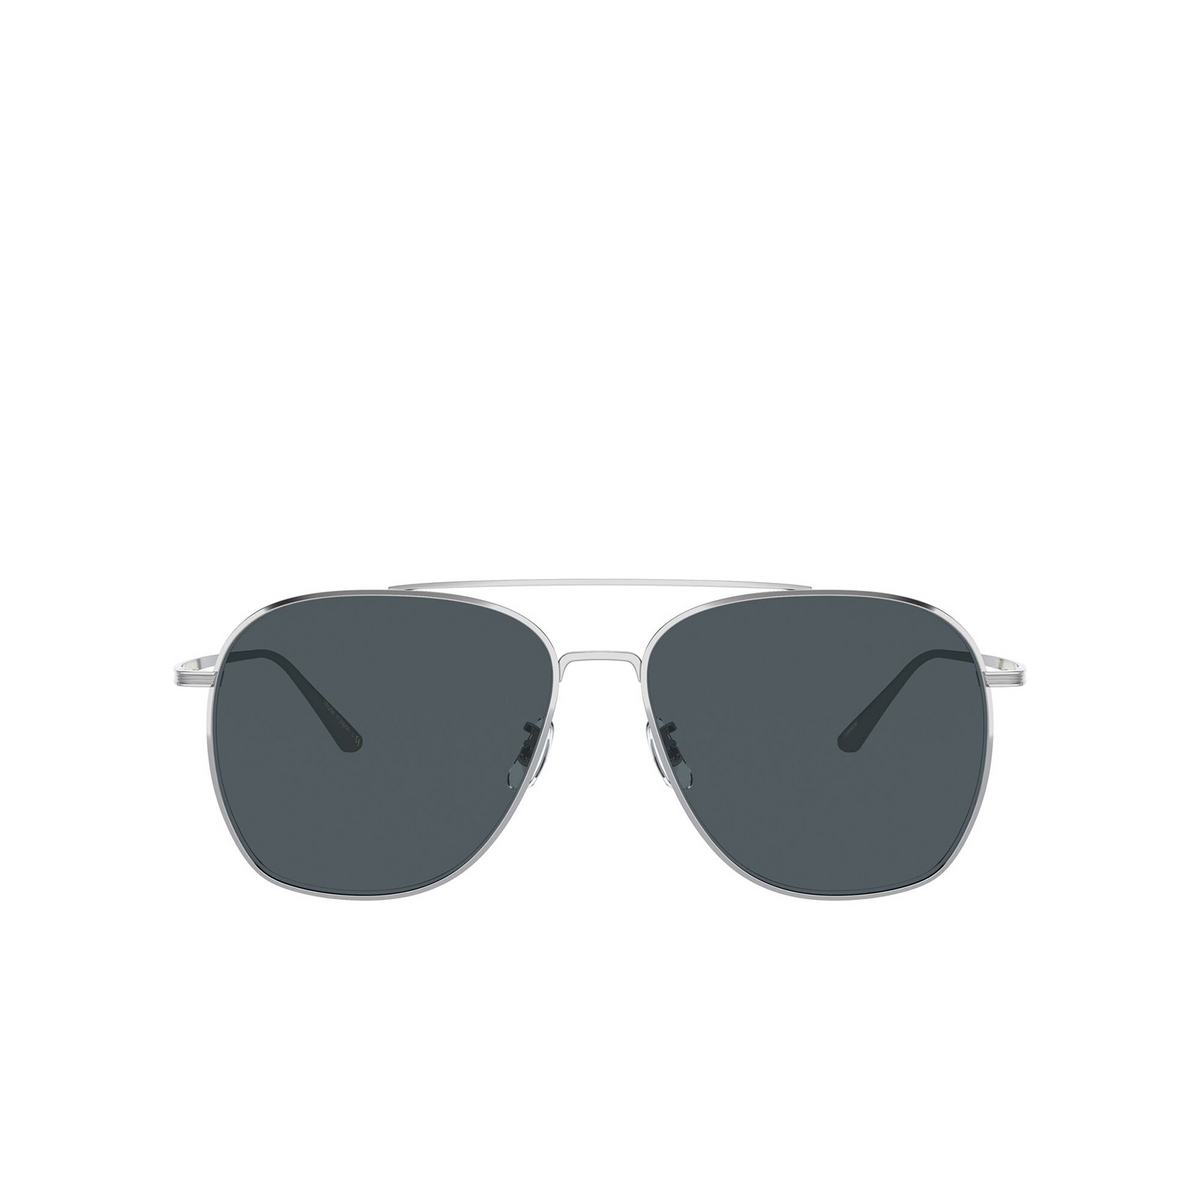 Oliver Peoples® Aviator Sunglasses: Ellerston OV1278ST color Silver 5036R5 - front view.